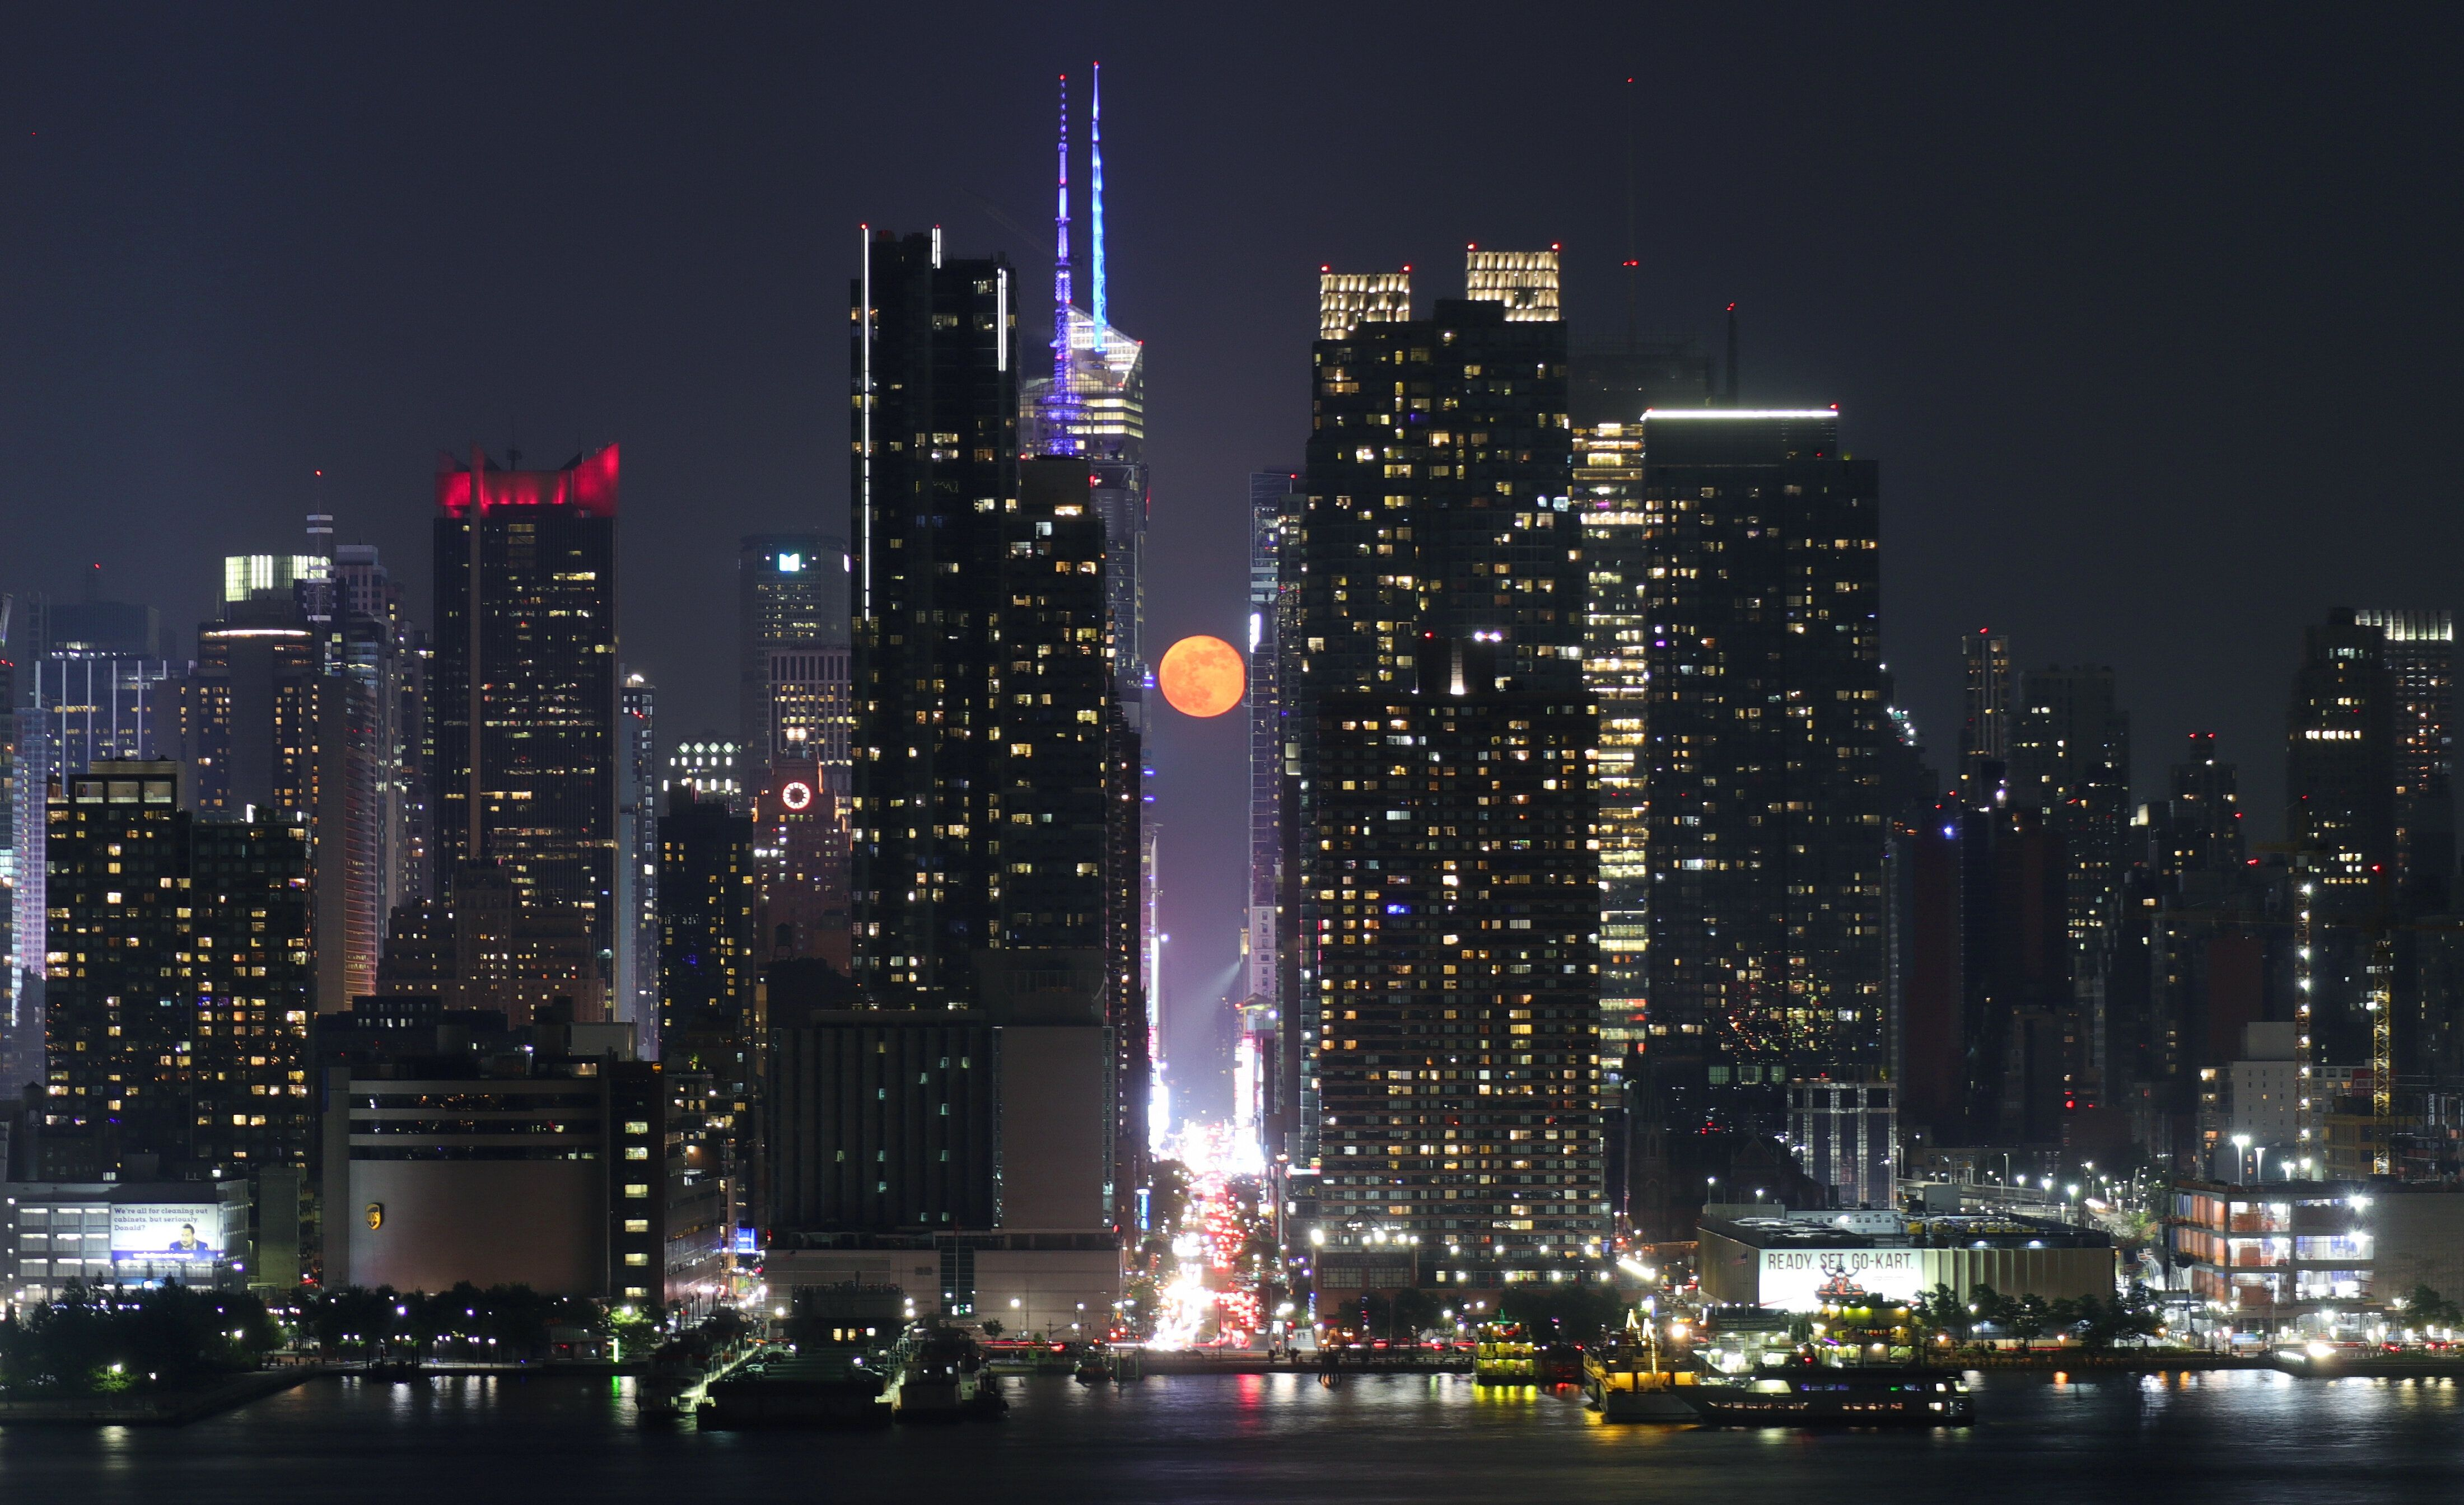 WEEHAWKEN, NJ - MAY 19: The moon rises above 42nd Street in New York City on May 19, 2019 as seen from Weehawken, New Jersey. (Photo by Gary Hershorn/Getty Images)